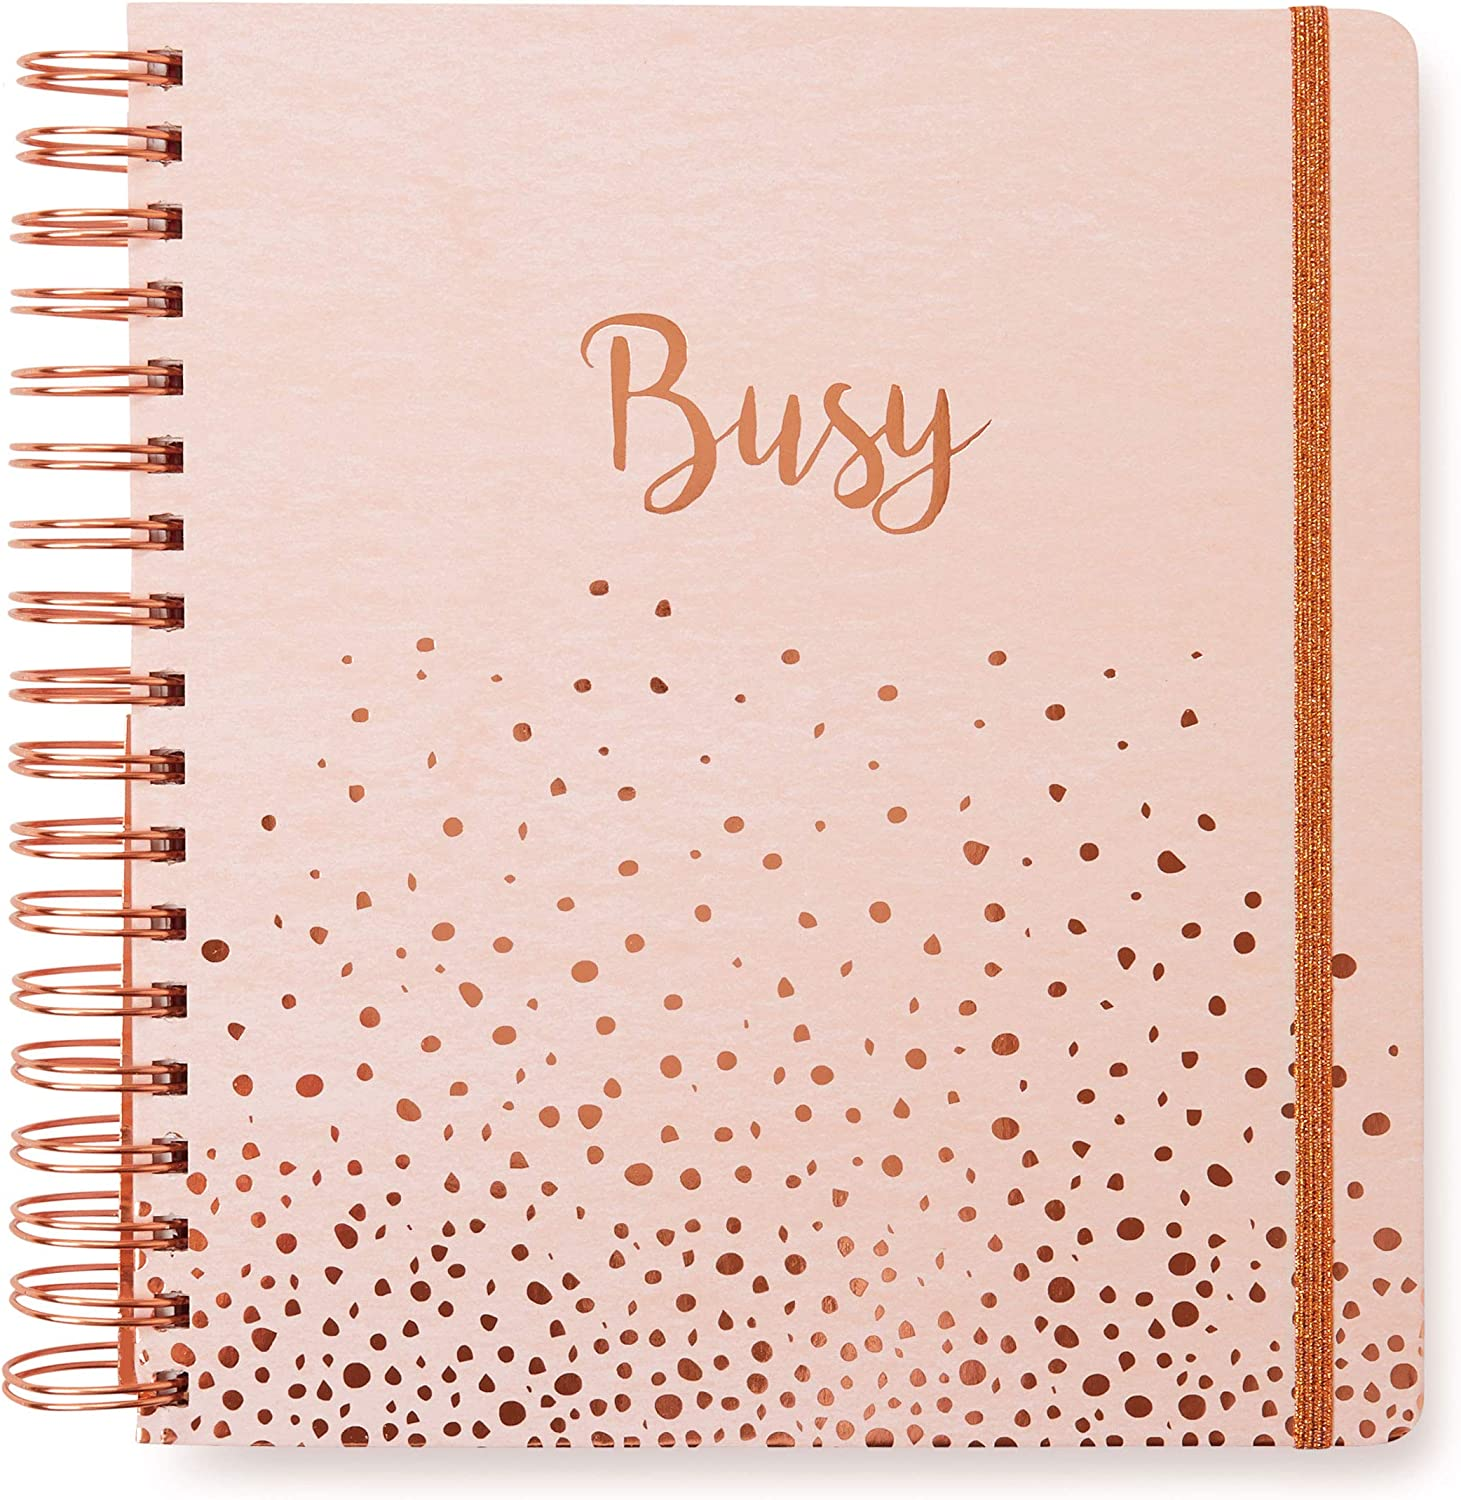 2020 Busy, 12 Month Daily Planners/Calendars: Tri-Coastal Design Planners with Monthly, Weekly and Daily Views - Personal Planner Notebook for Work or Home